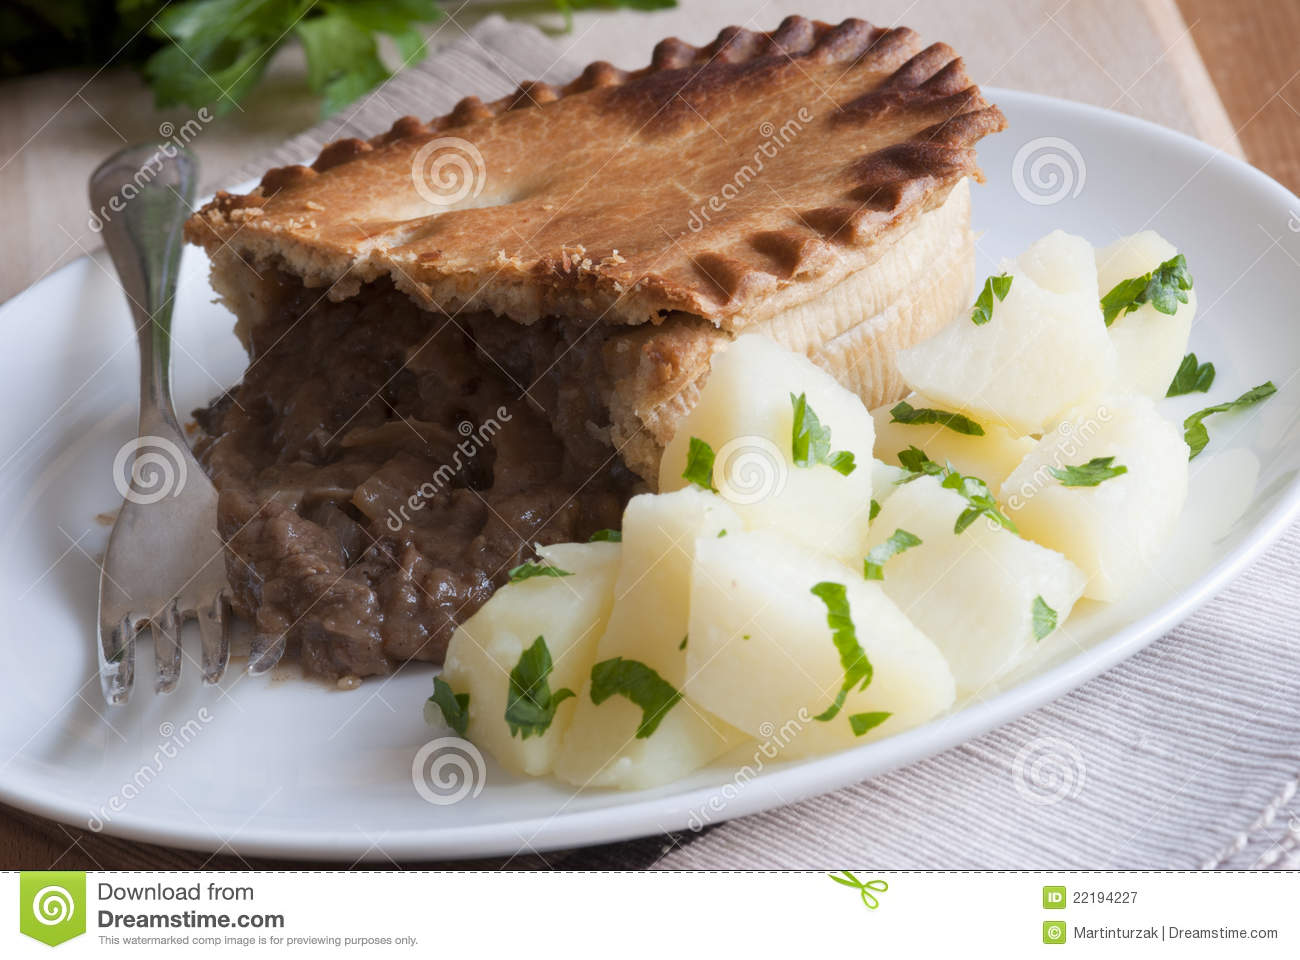 Steak, Mushroom & Wine Pie Royalty Free Stock Photography - Image ...